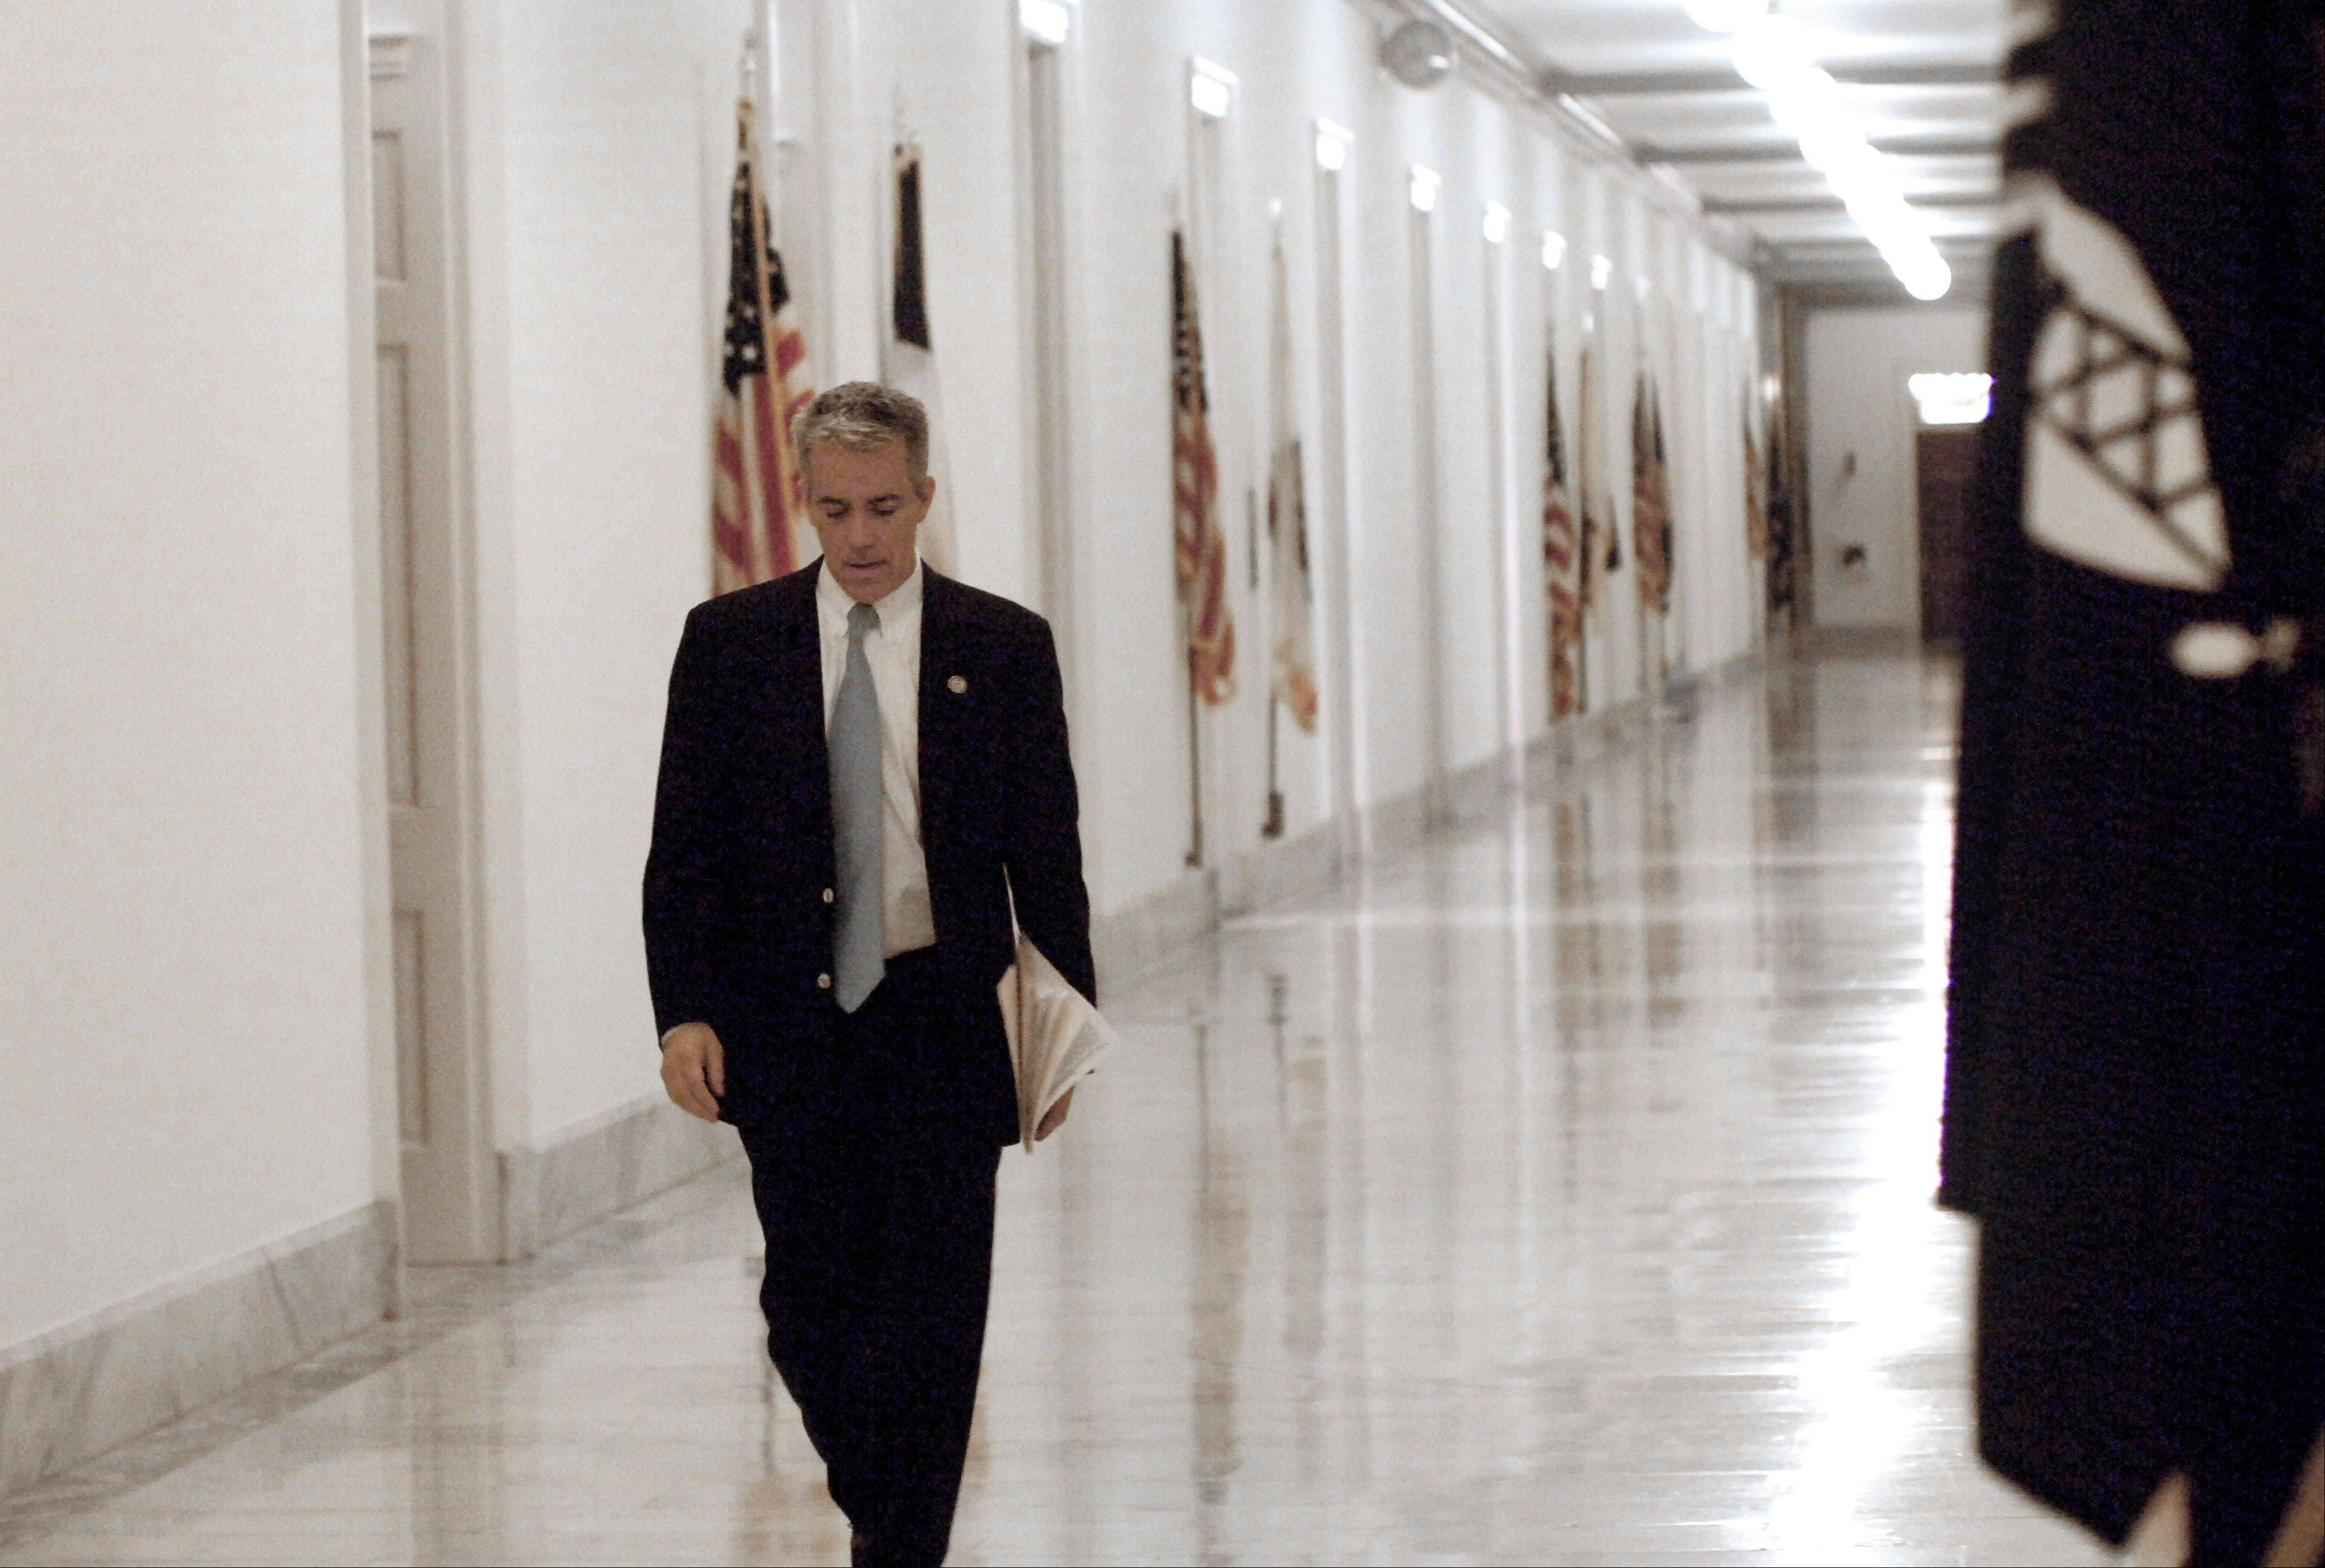 Illinois Congressman Joe Walsh walks to his Cannon House office after an early morning meeting in Washington D.C. this spring. Walsh, in the past six months has become a public face of the tea party through his frequent media appearances.